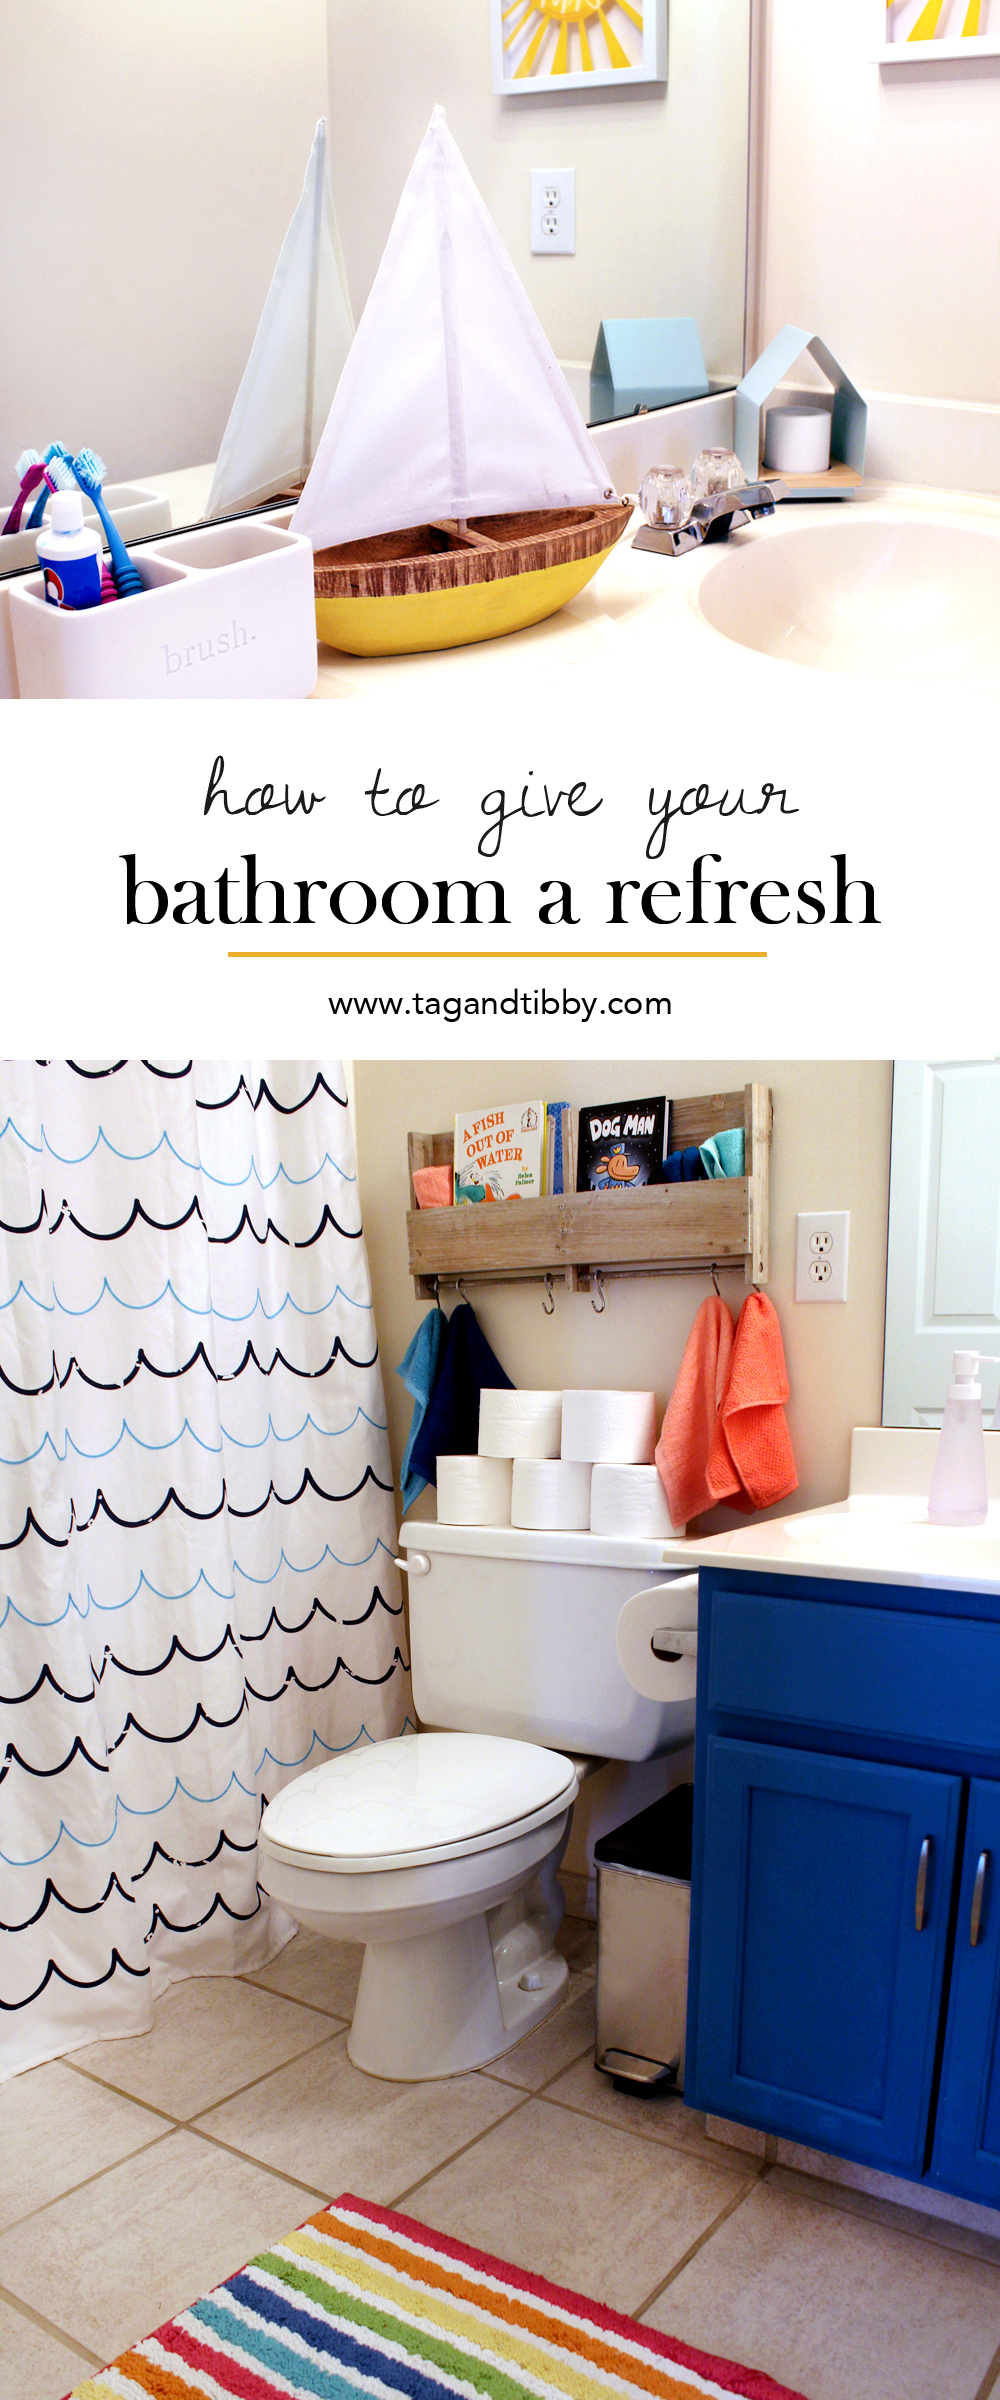 How to Give Your Bathroom a Refresh in 4 Steps